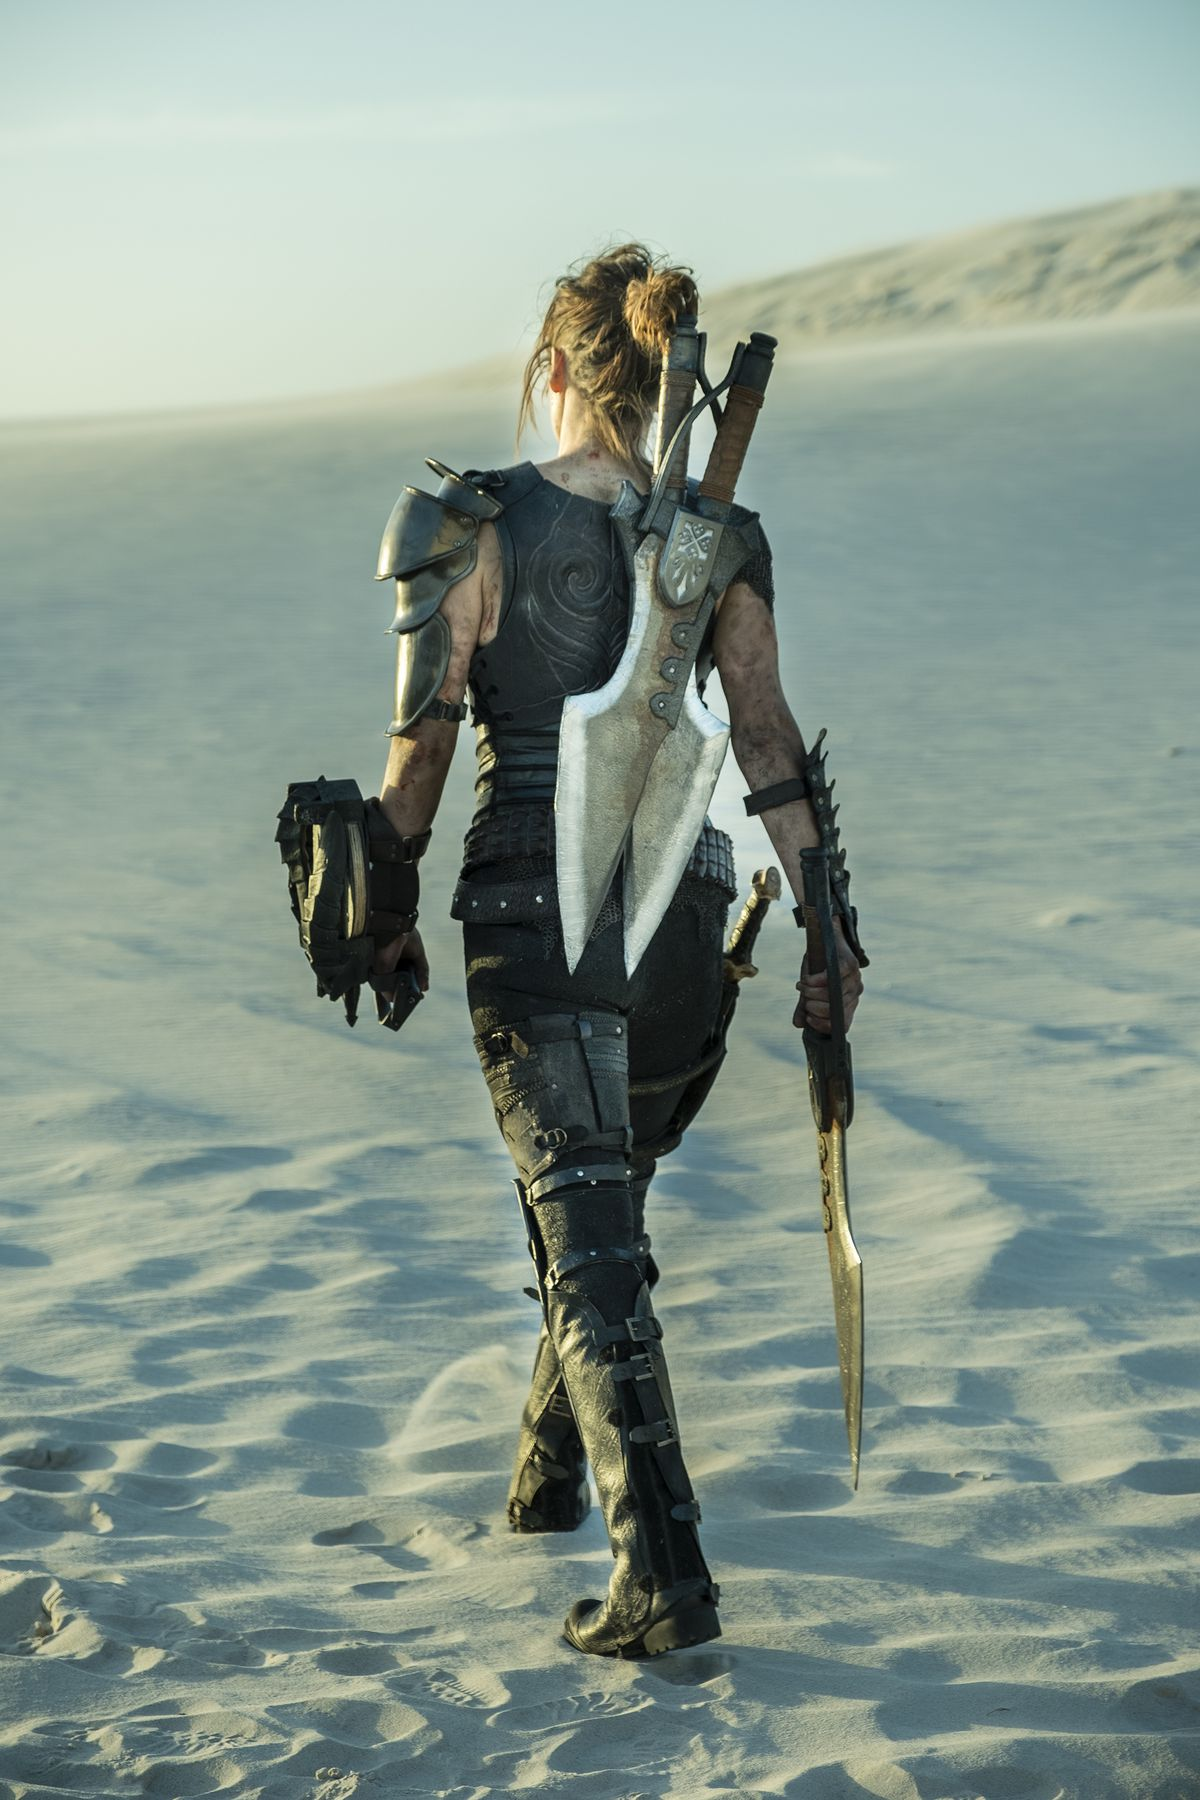 Milla Jovovich with back to camera walks through the desert with her Monster Hunter blades dangling on her back